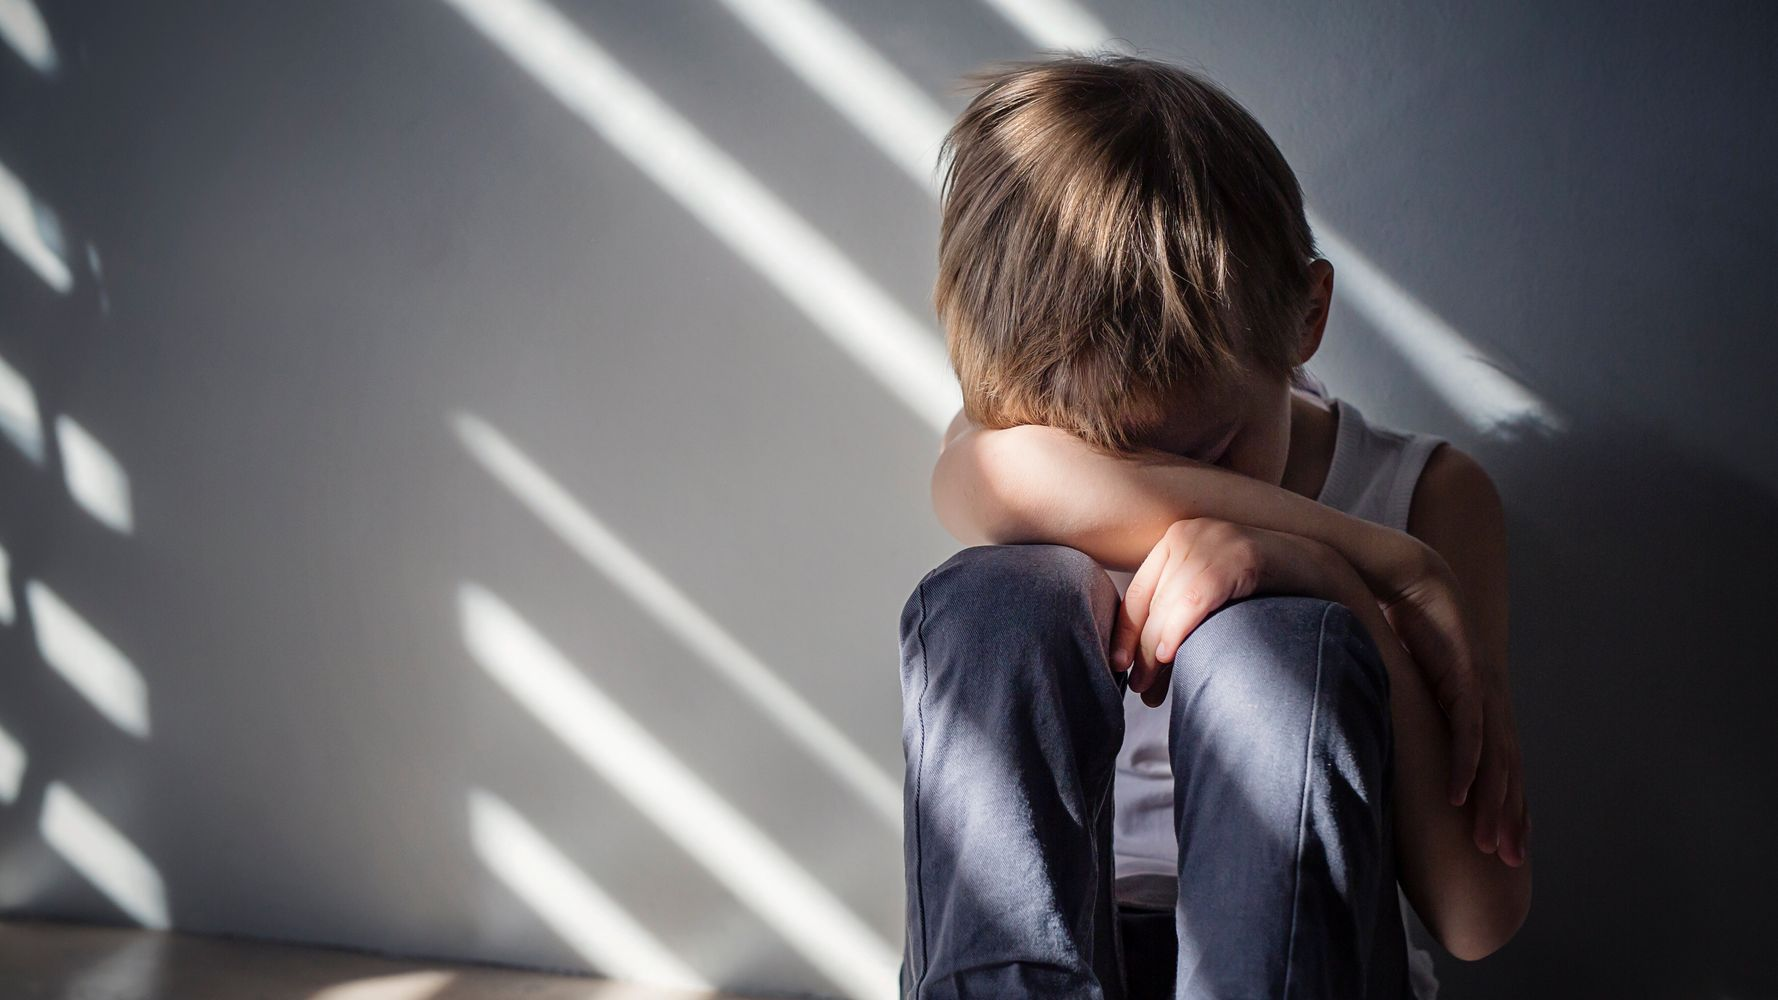 Mental Health Act: Calls To End 'Horrific' Detention Of Young People With Autism